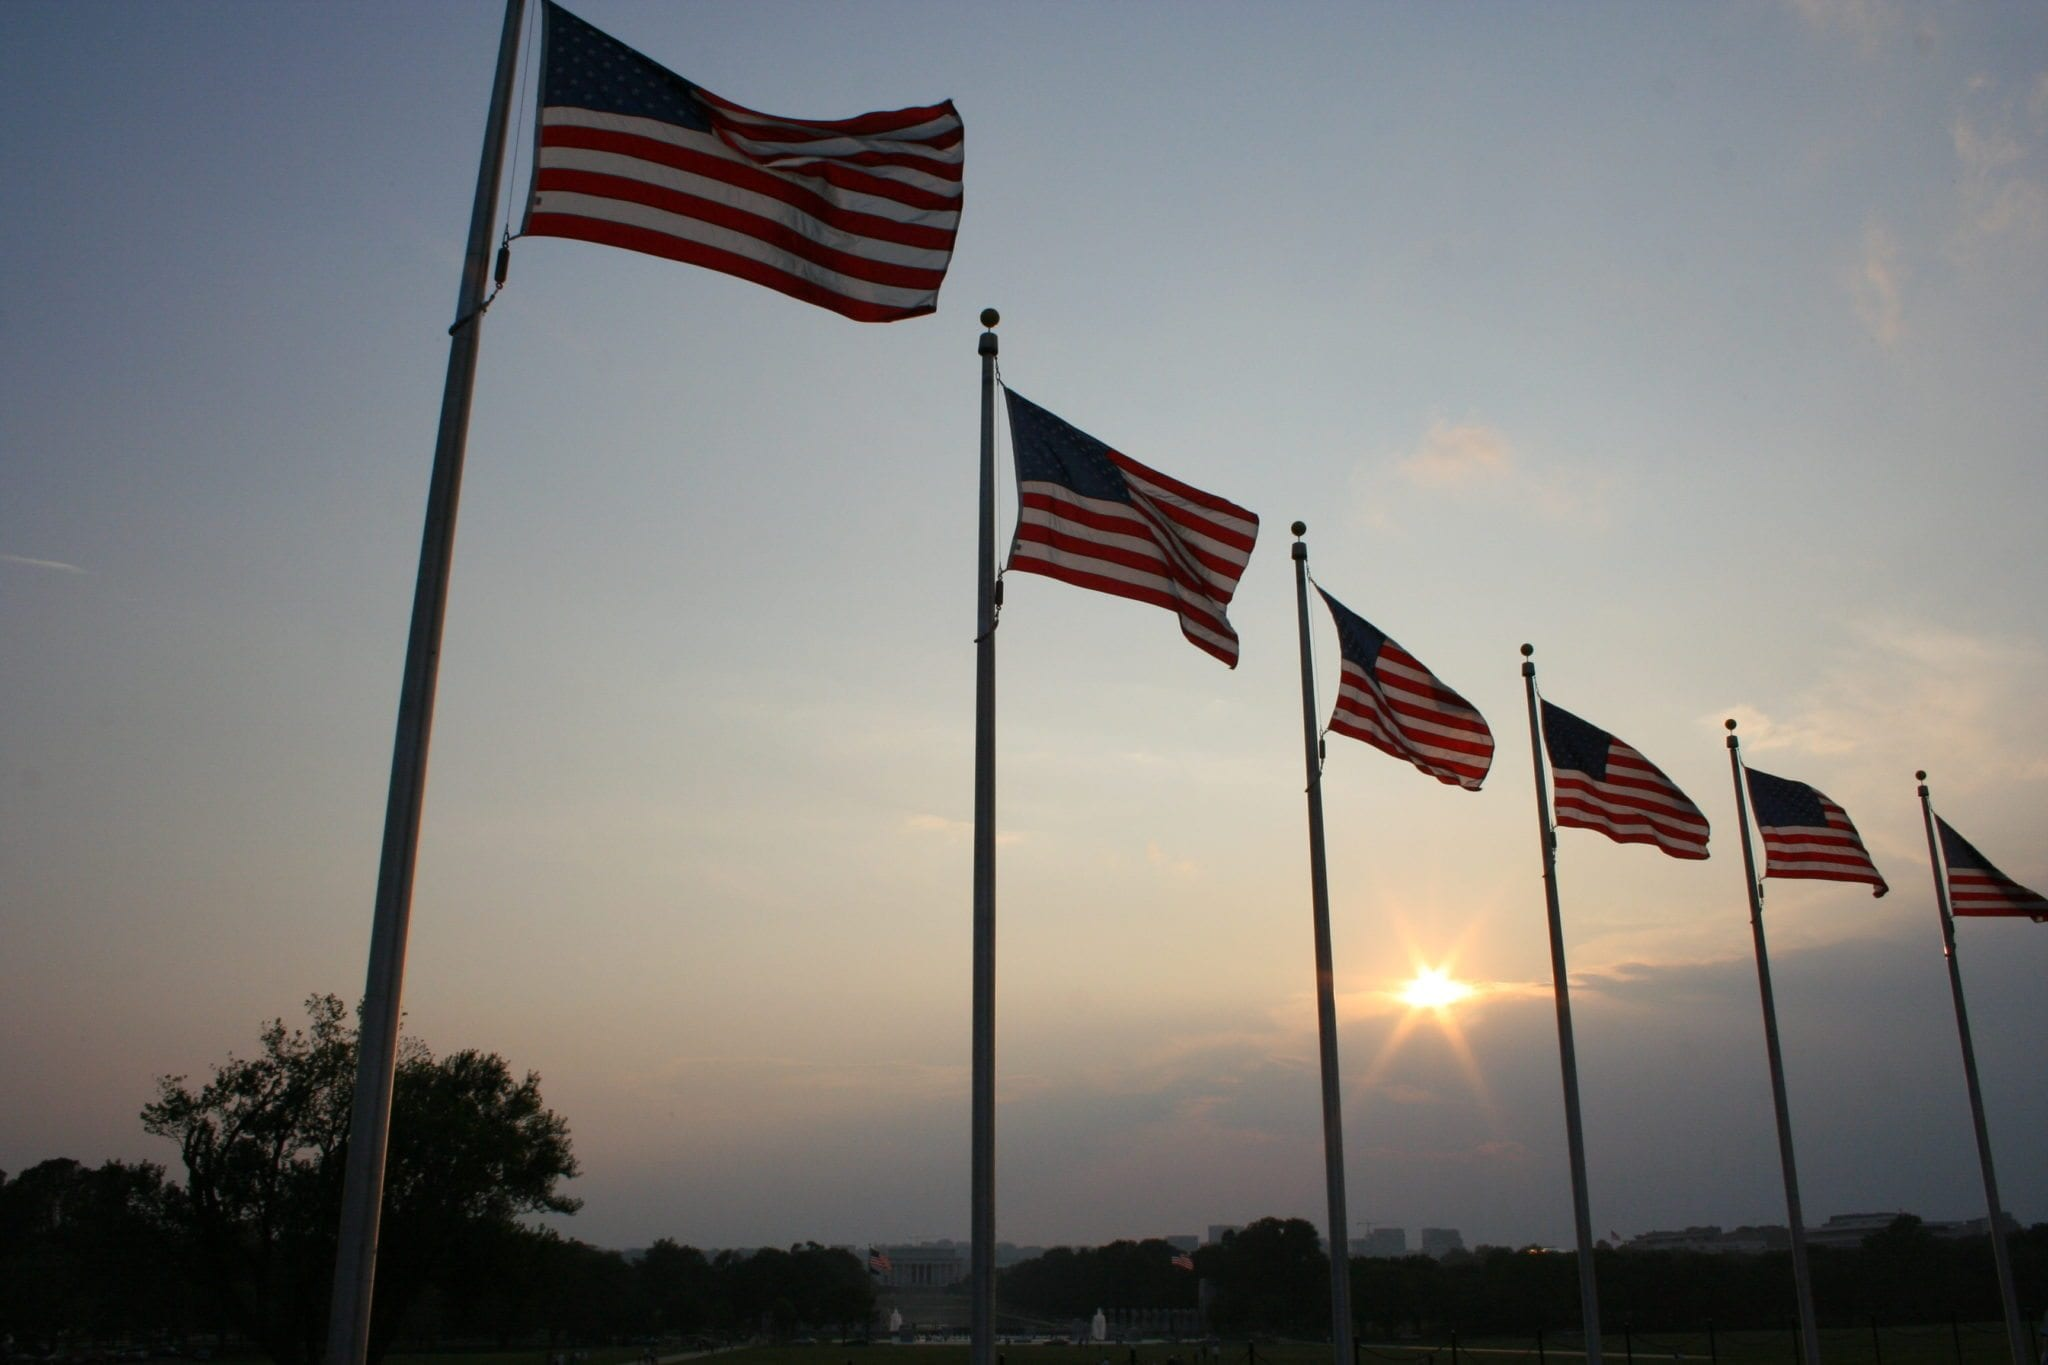 Noe celebs say Old Glory needs replaced – Idiots